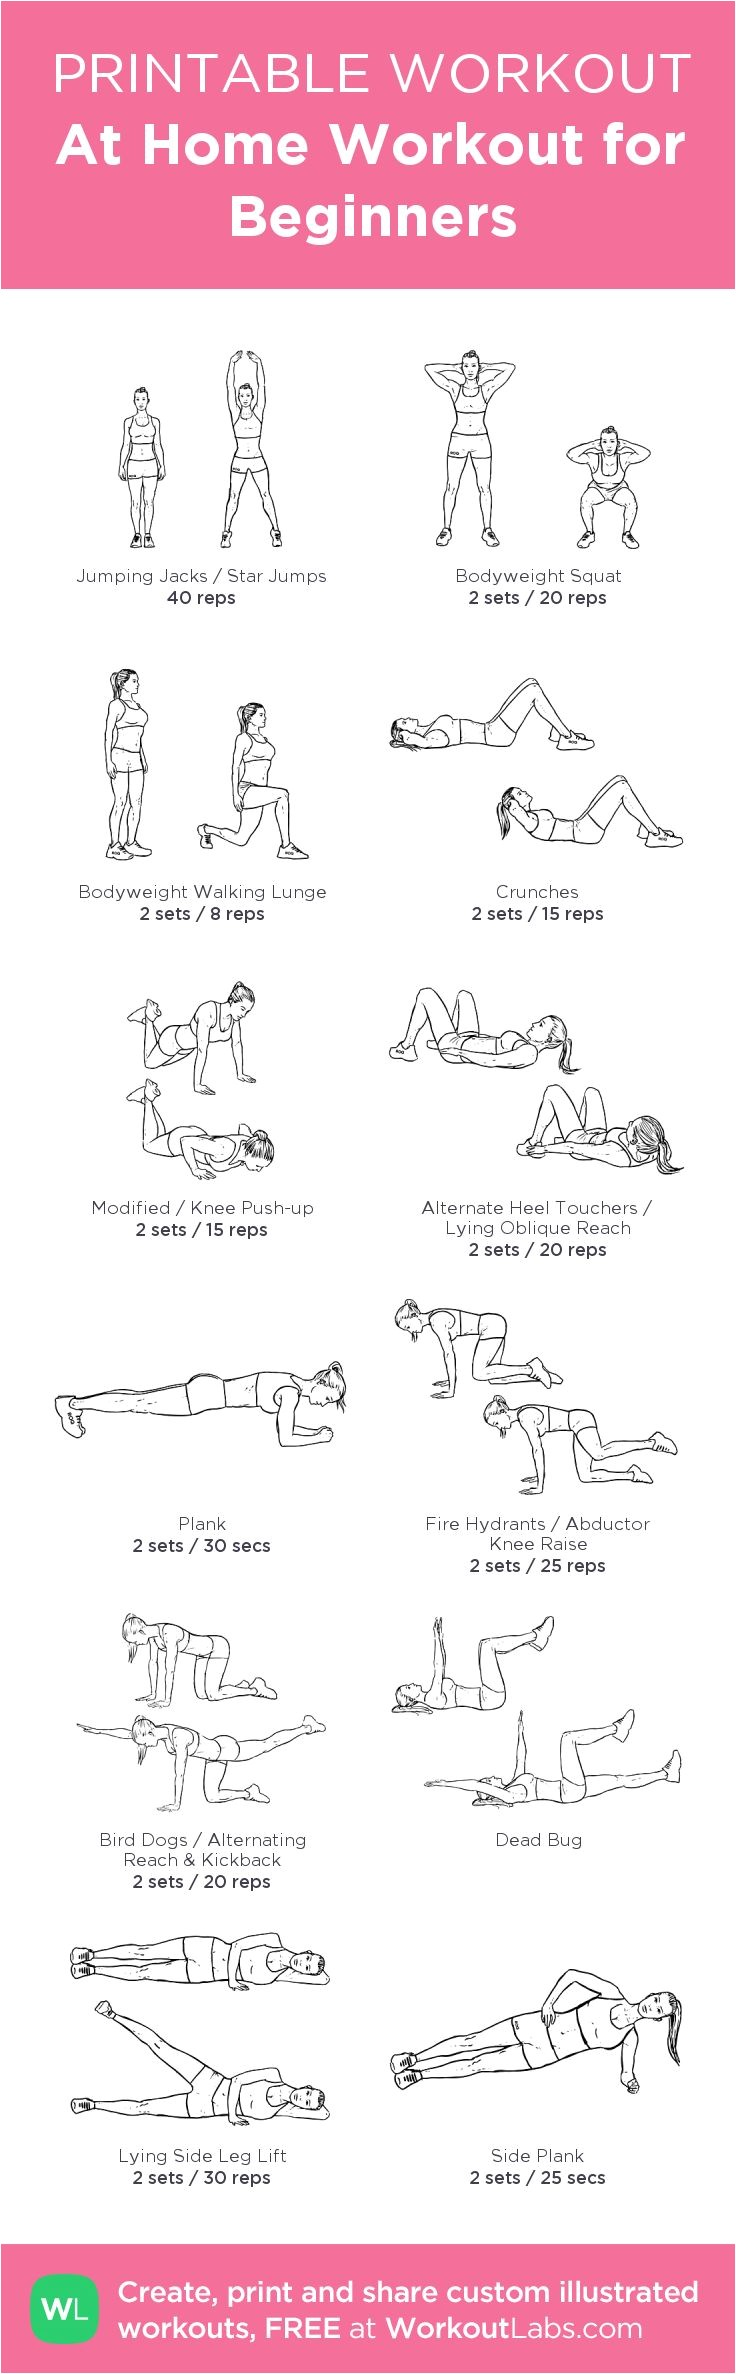 beginners workout routine for weight loss at home